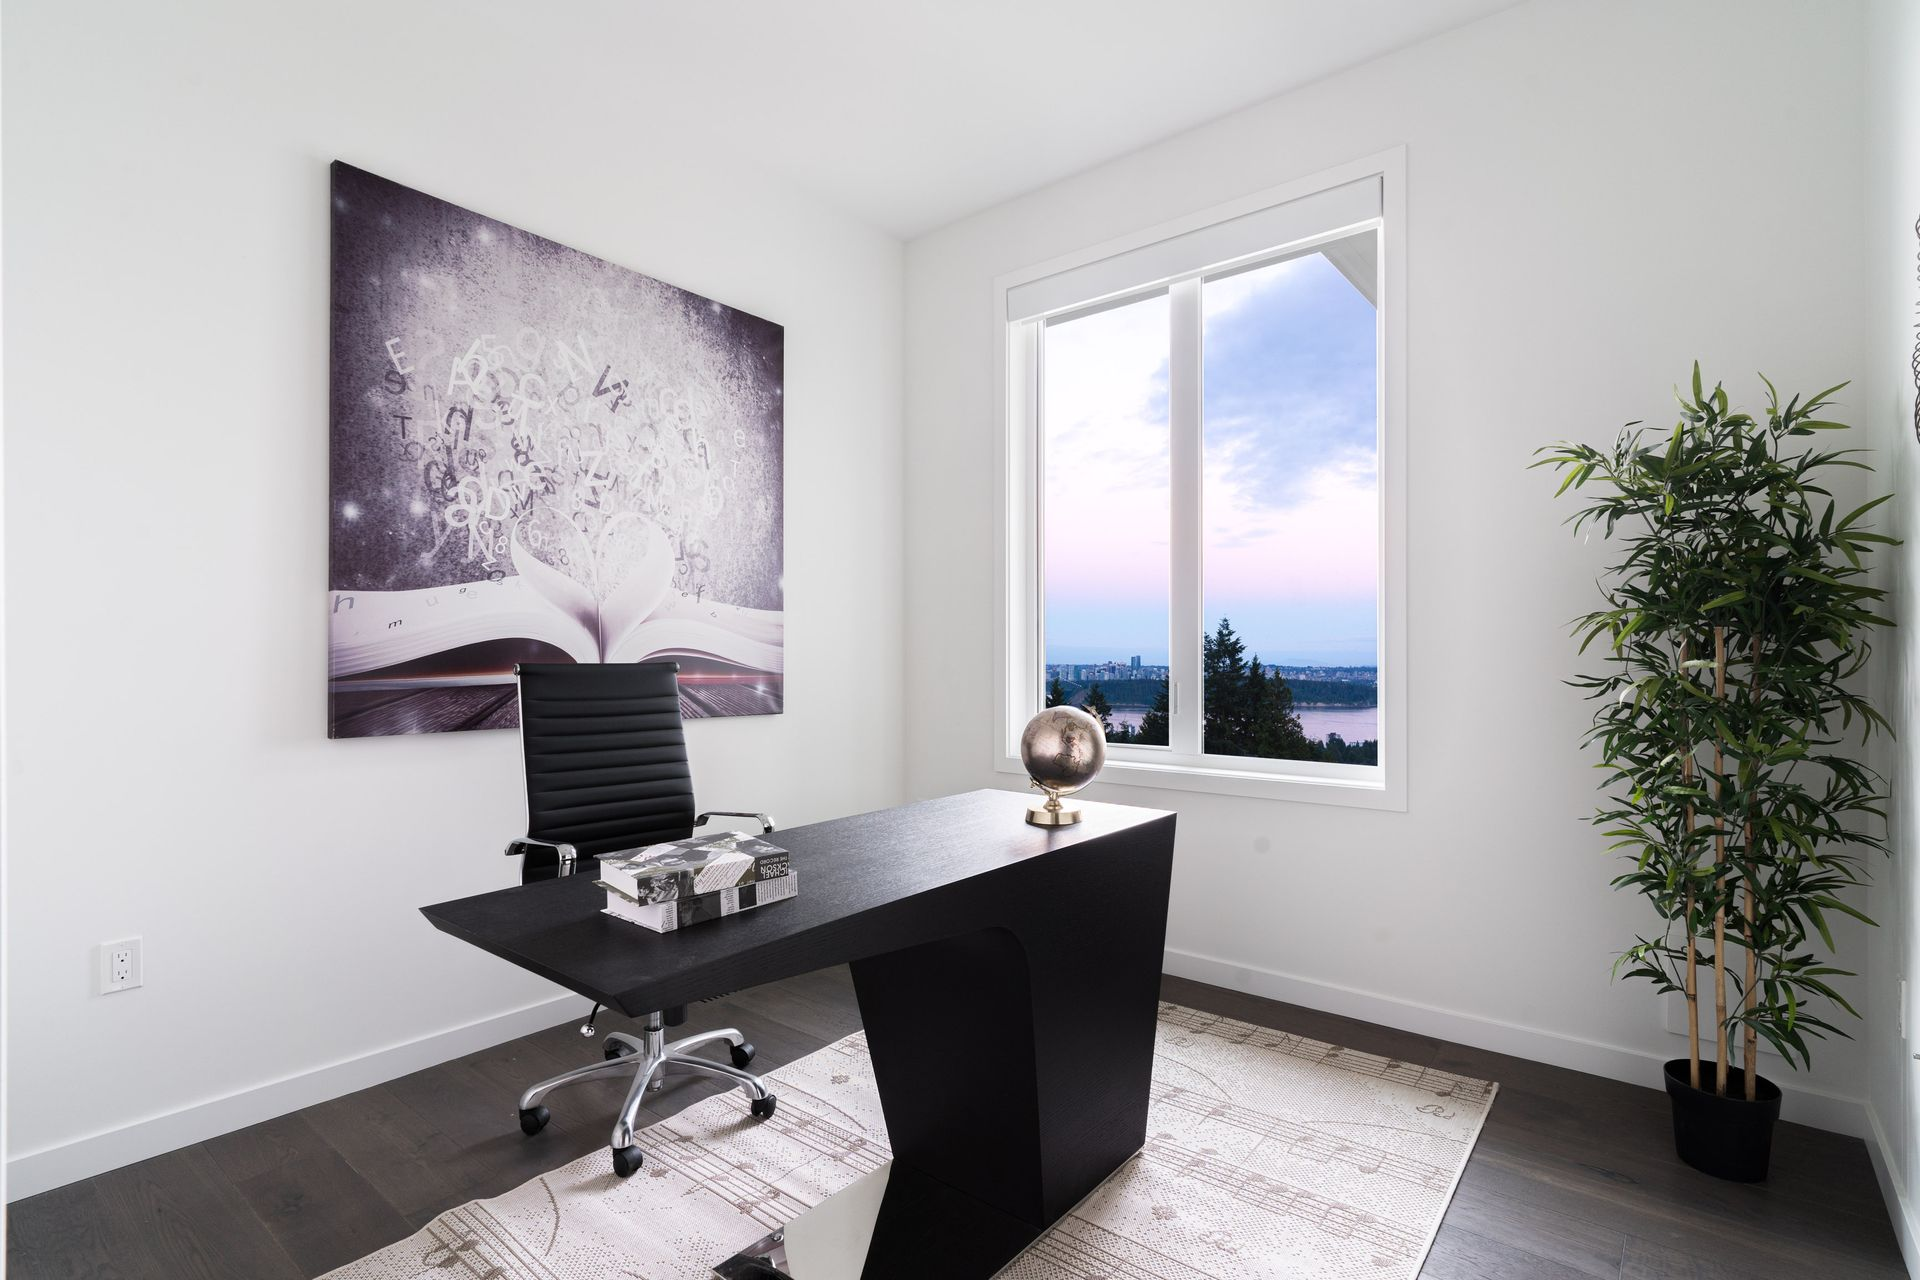 union-crt-2101-west-vancouver-tandy-gao-staging-15 at 2101 Union Court, Panorama Village, West Vancouver